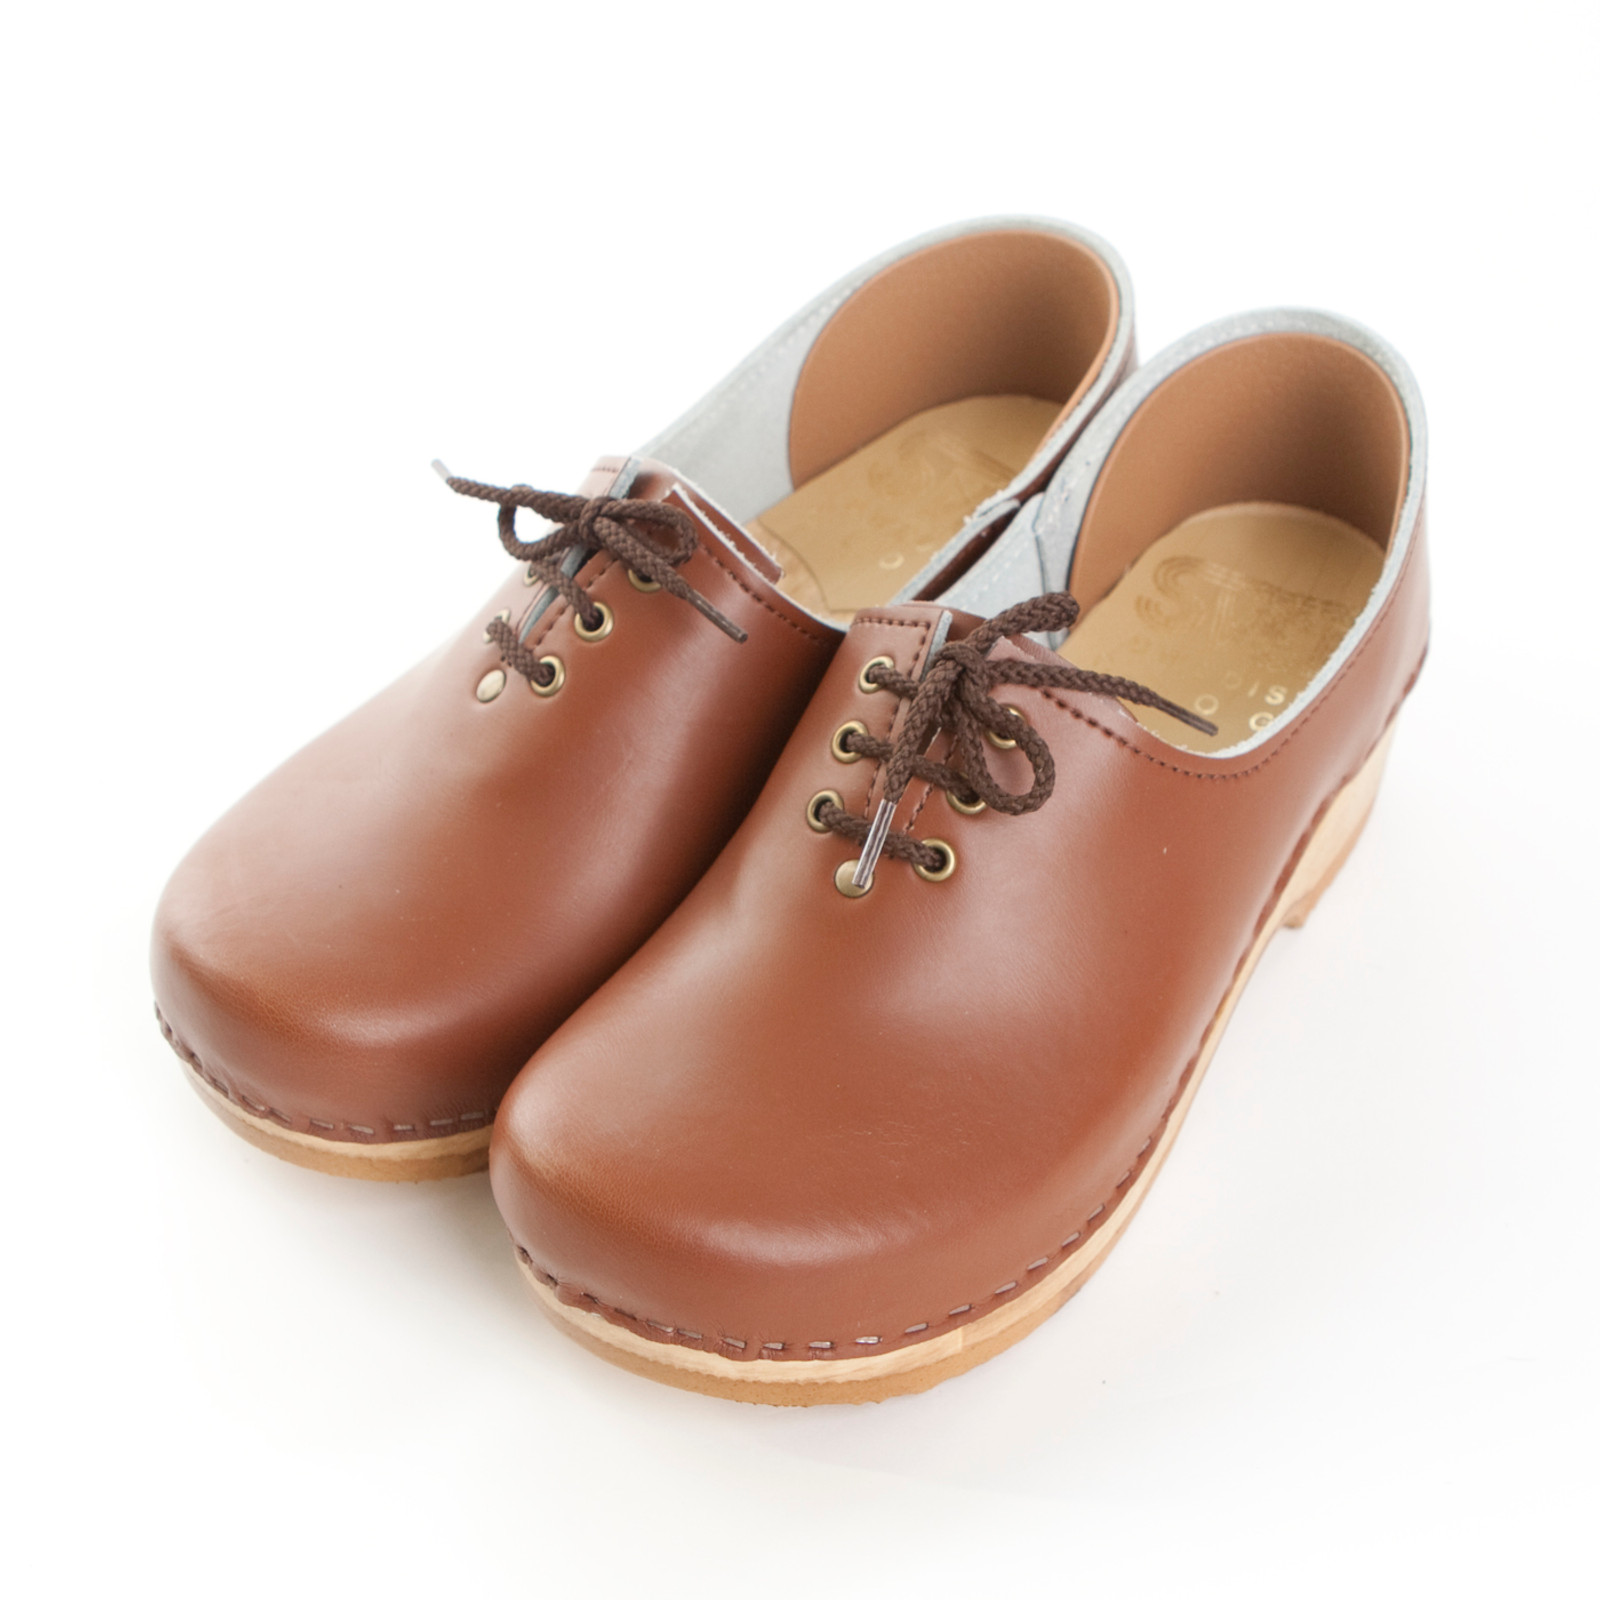 Closed Back Tie Clogs - Low Heel Bendable